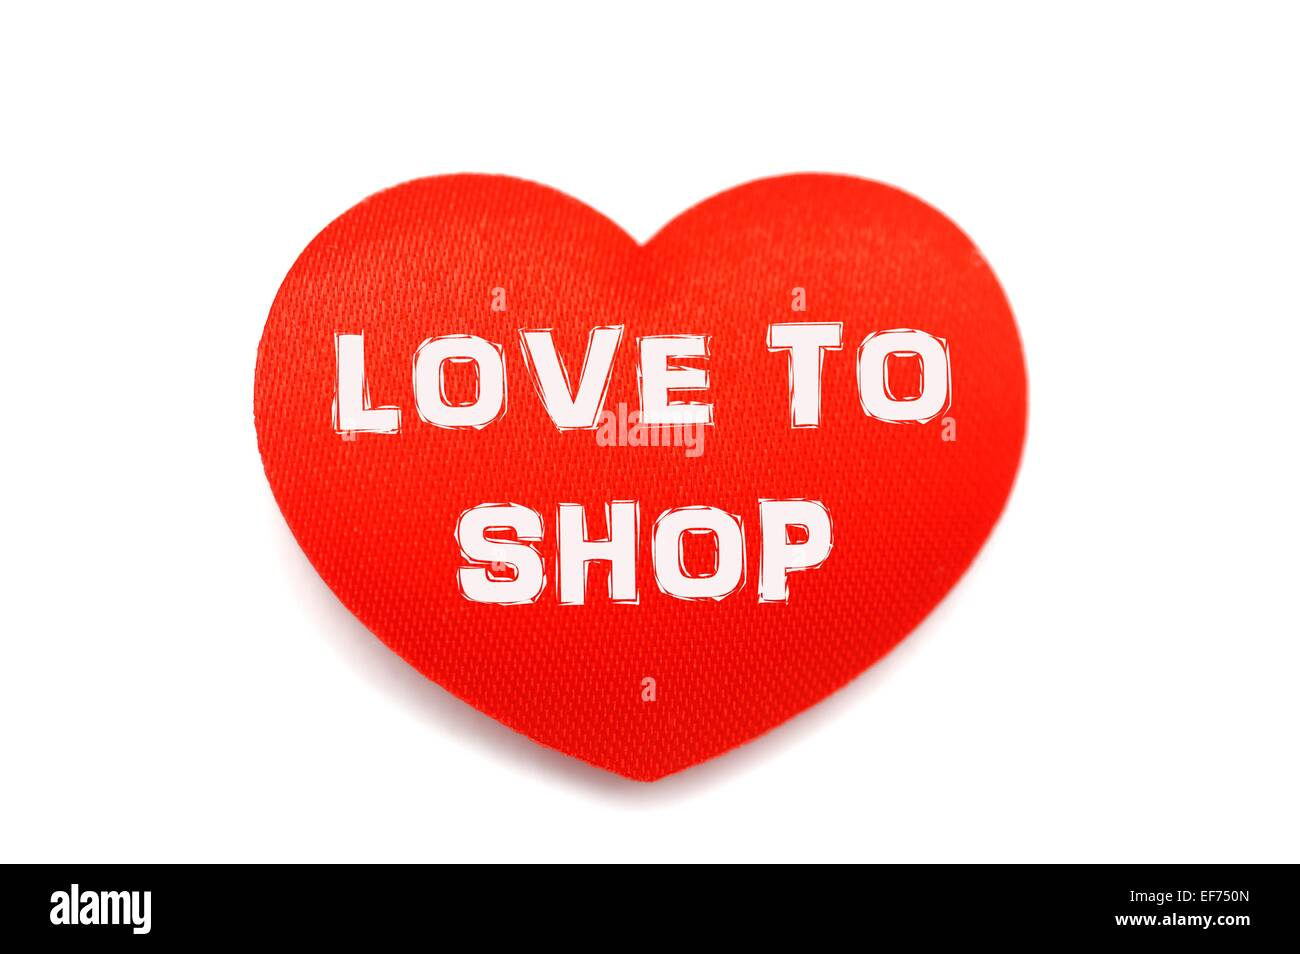 Love to shop red heart shopping concept - Stock Image